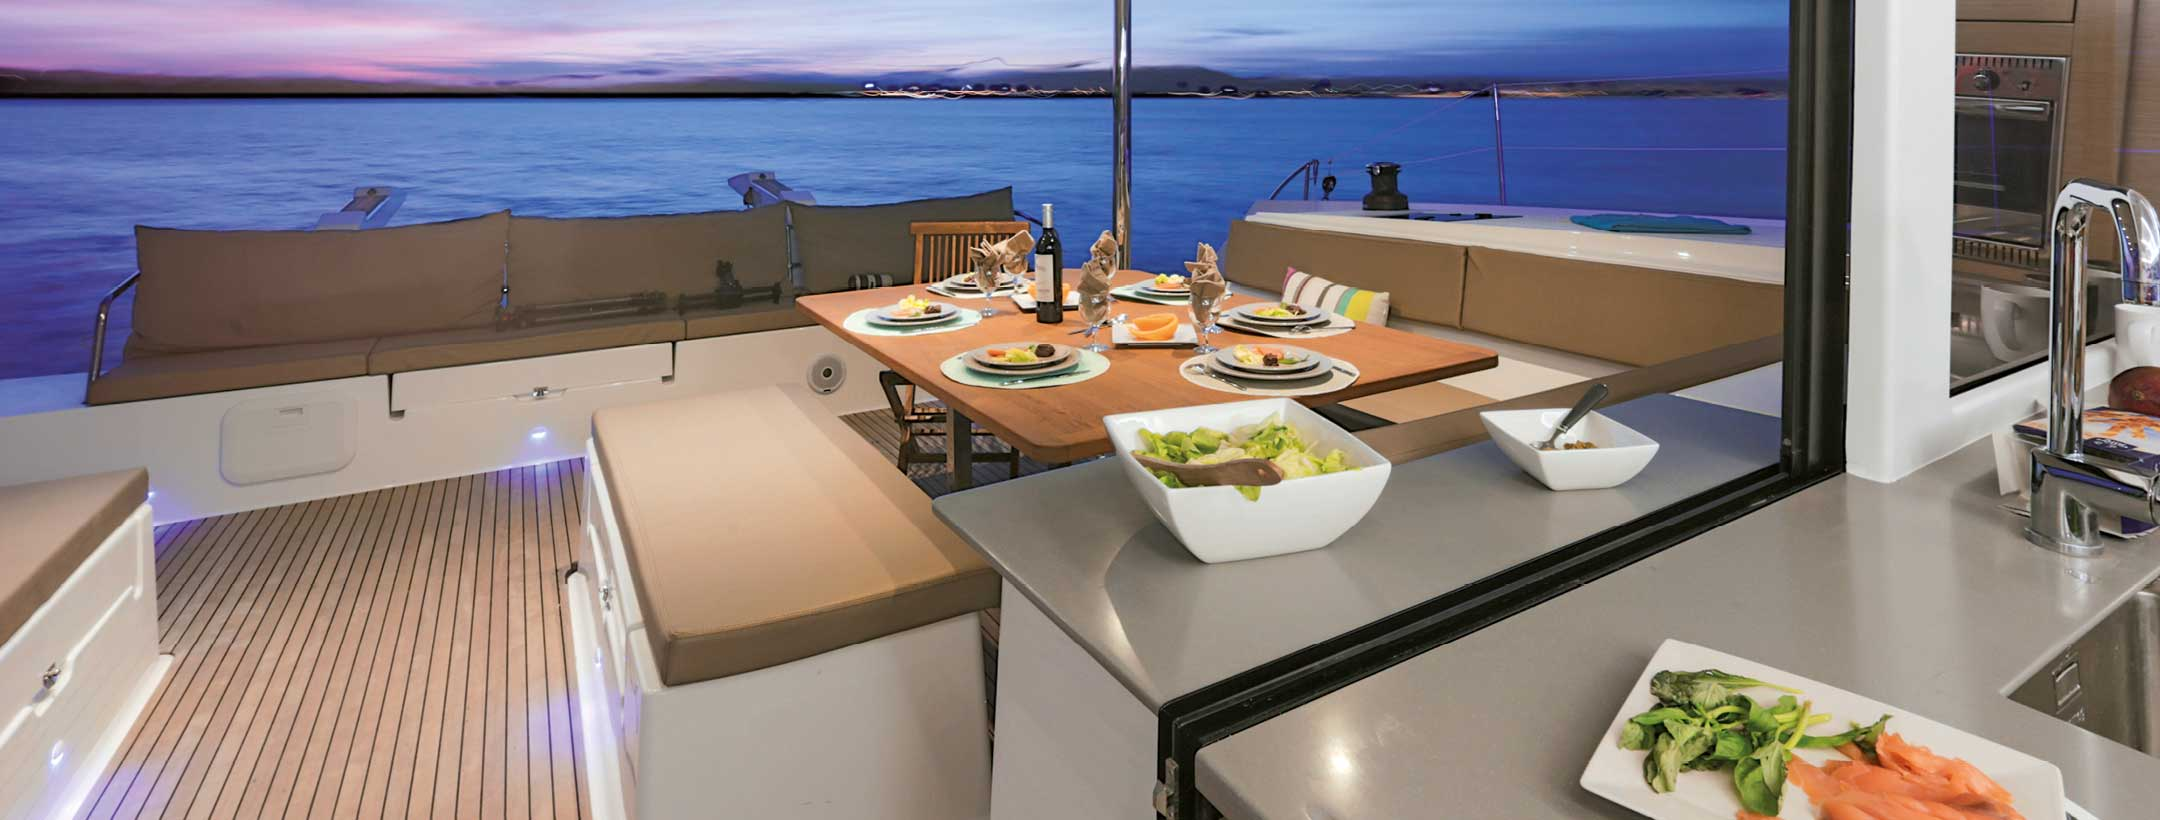 TradeWinds 52 Cruising Class Yacht dining room